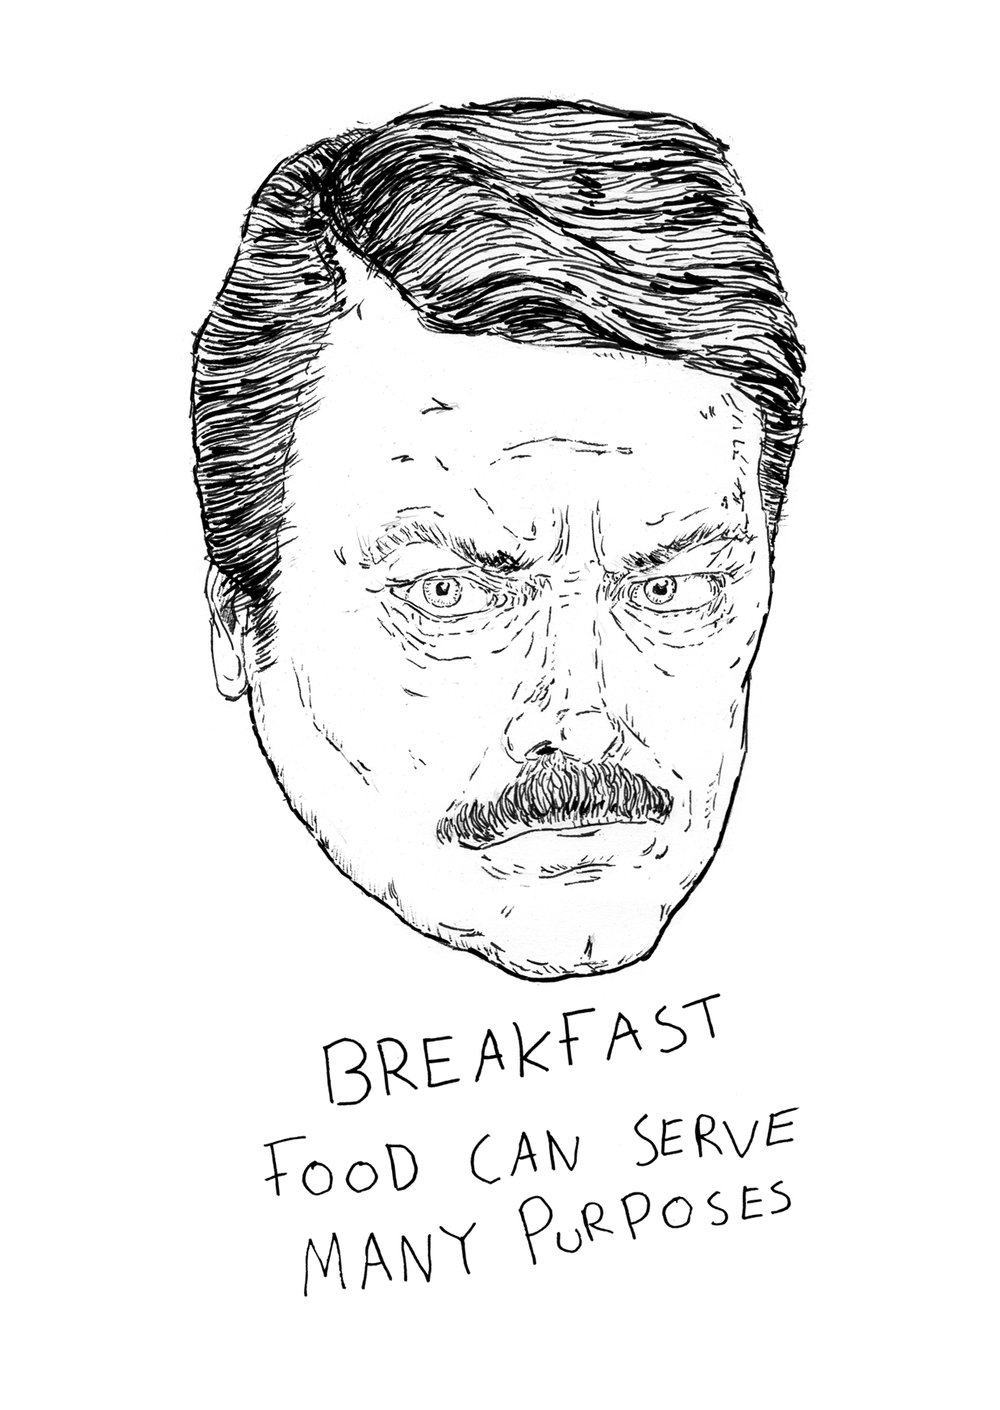 Day 19 Breakfast Ron Swanson